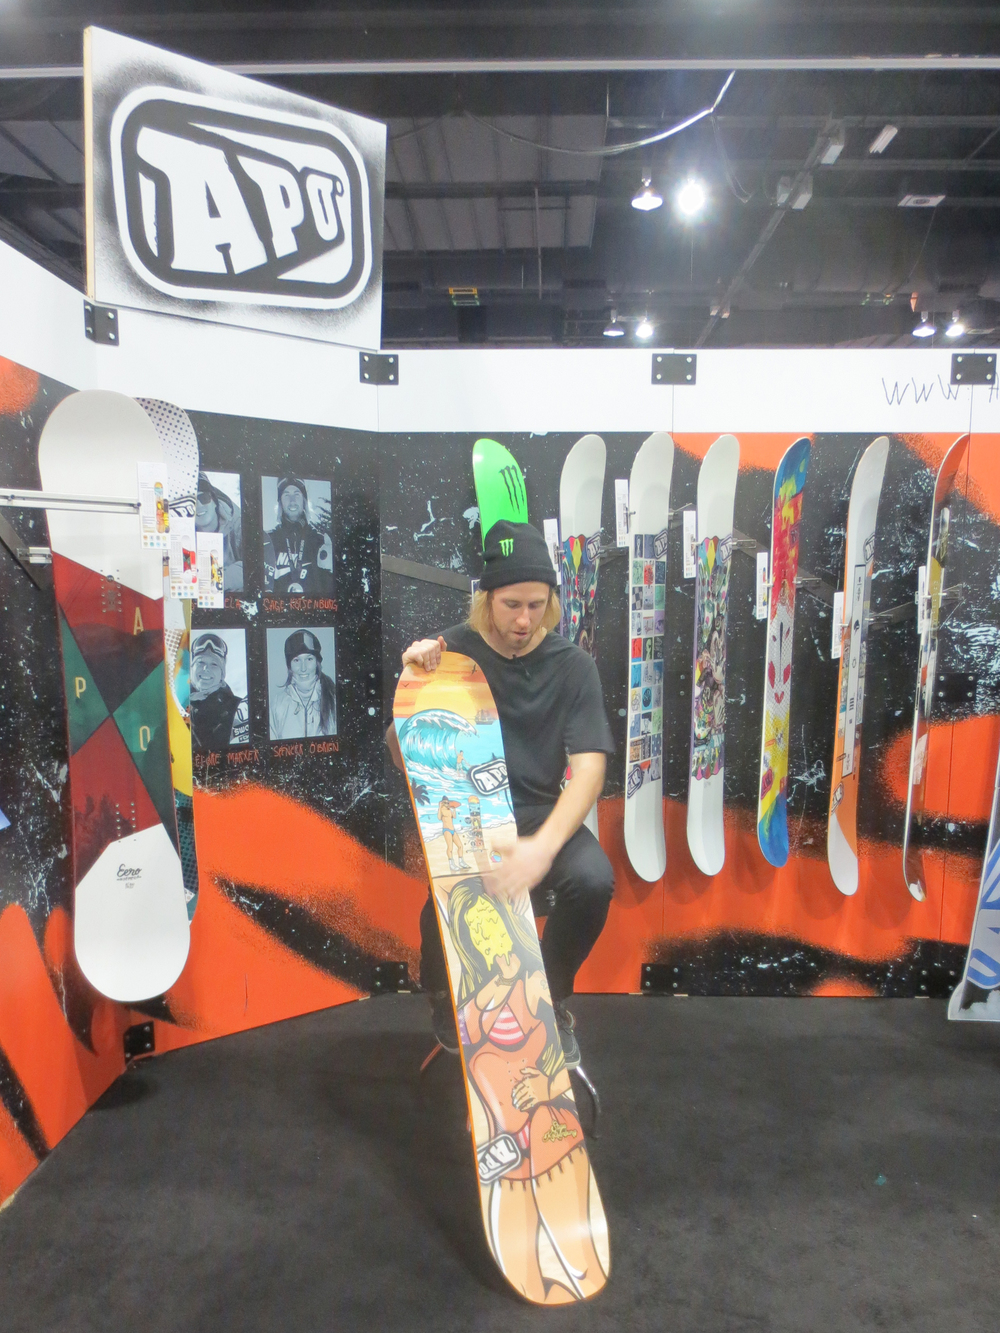 Sage Kotsenburg showing off his new Apo pro model.